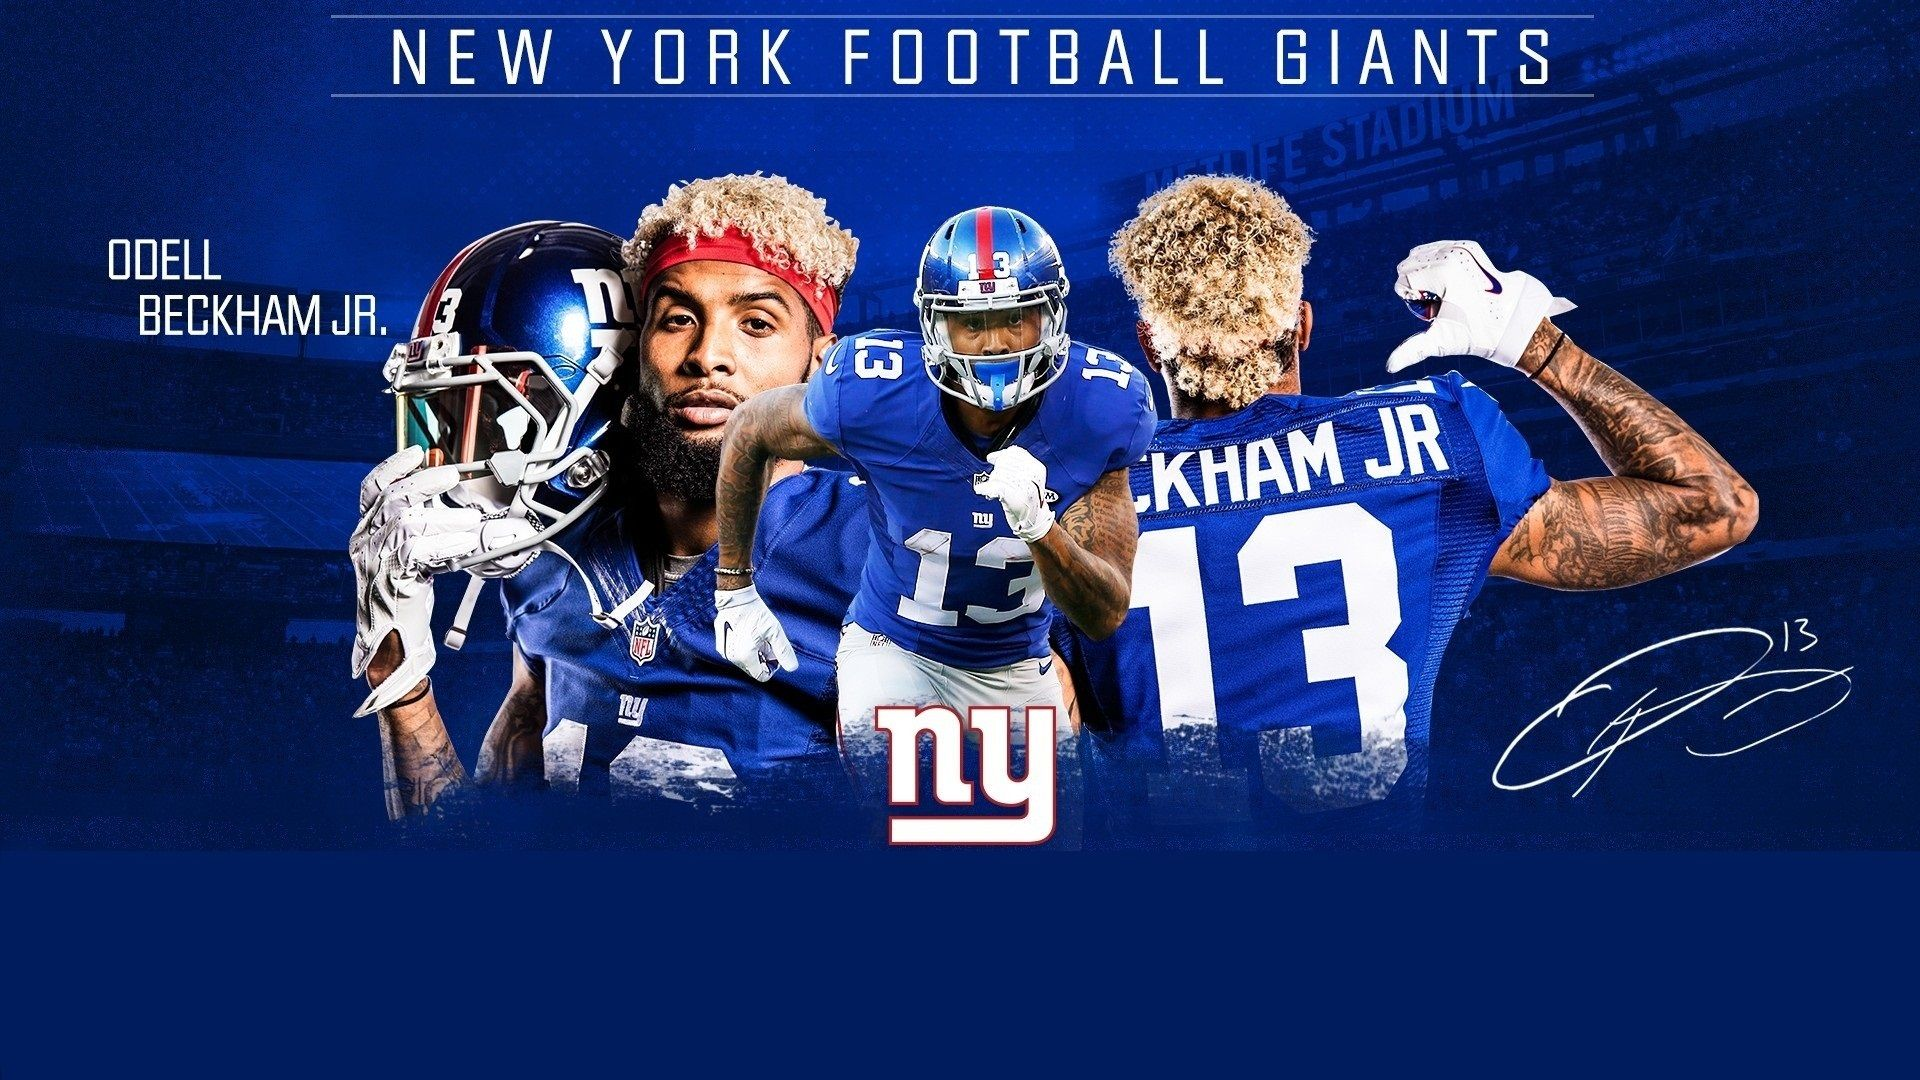 Nfl Wallpapers Beckham Jr Odell Beckham Jr Nfl Football Wallpaper